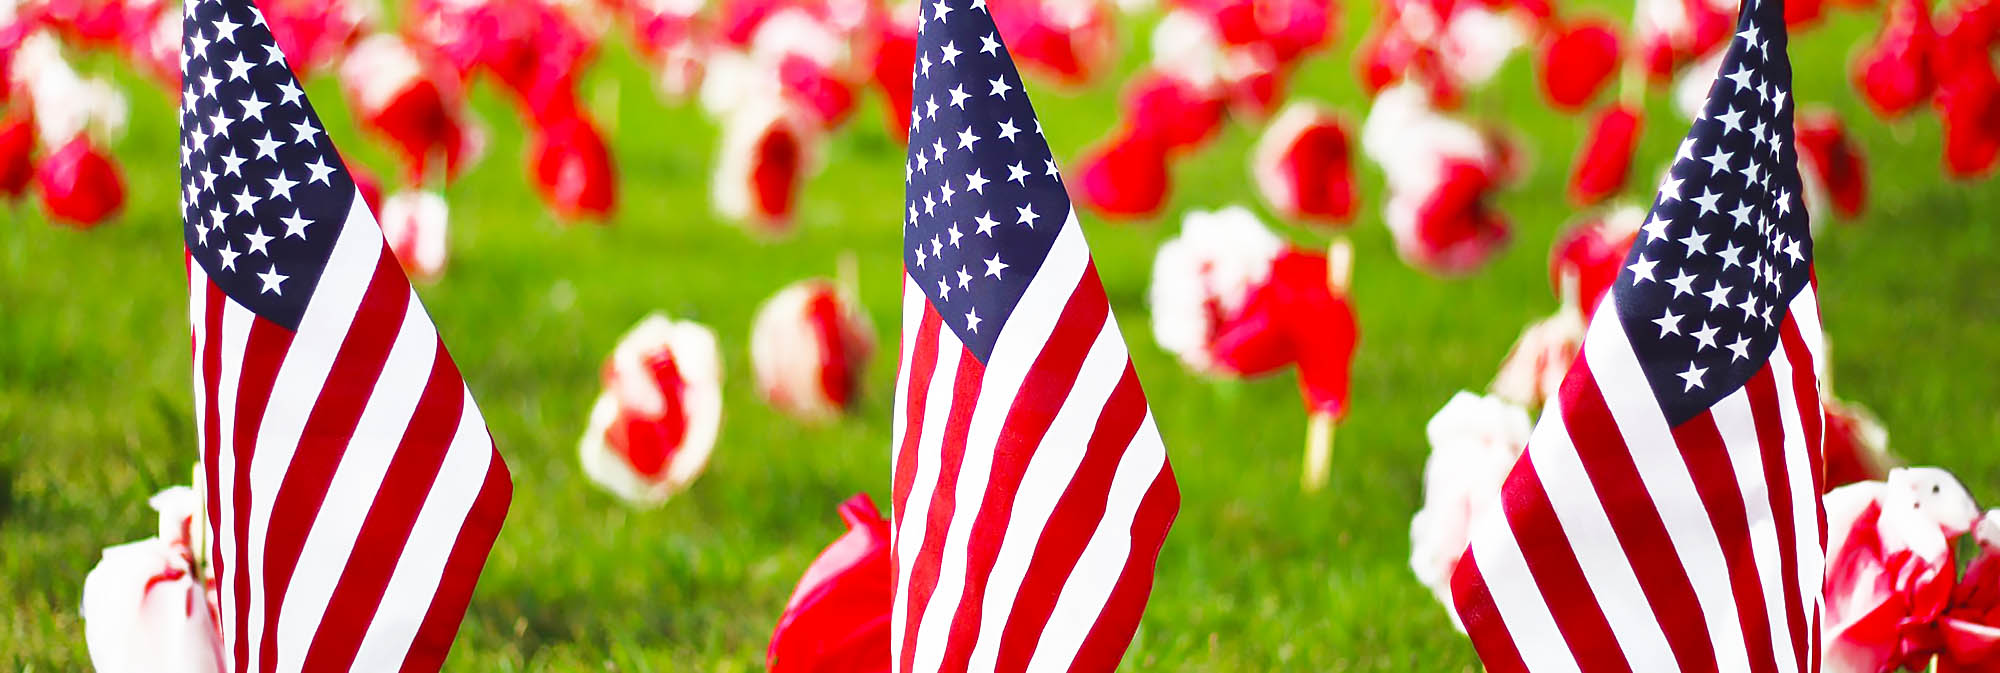 Memorial Day Weekend Wreath Ceremony